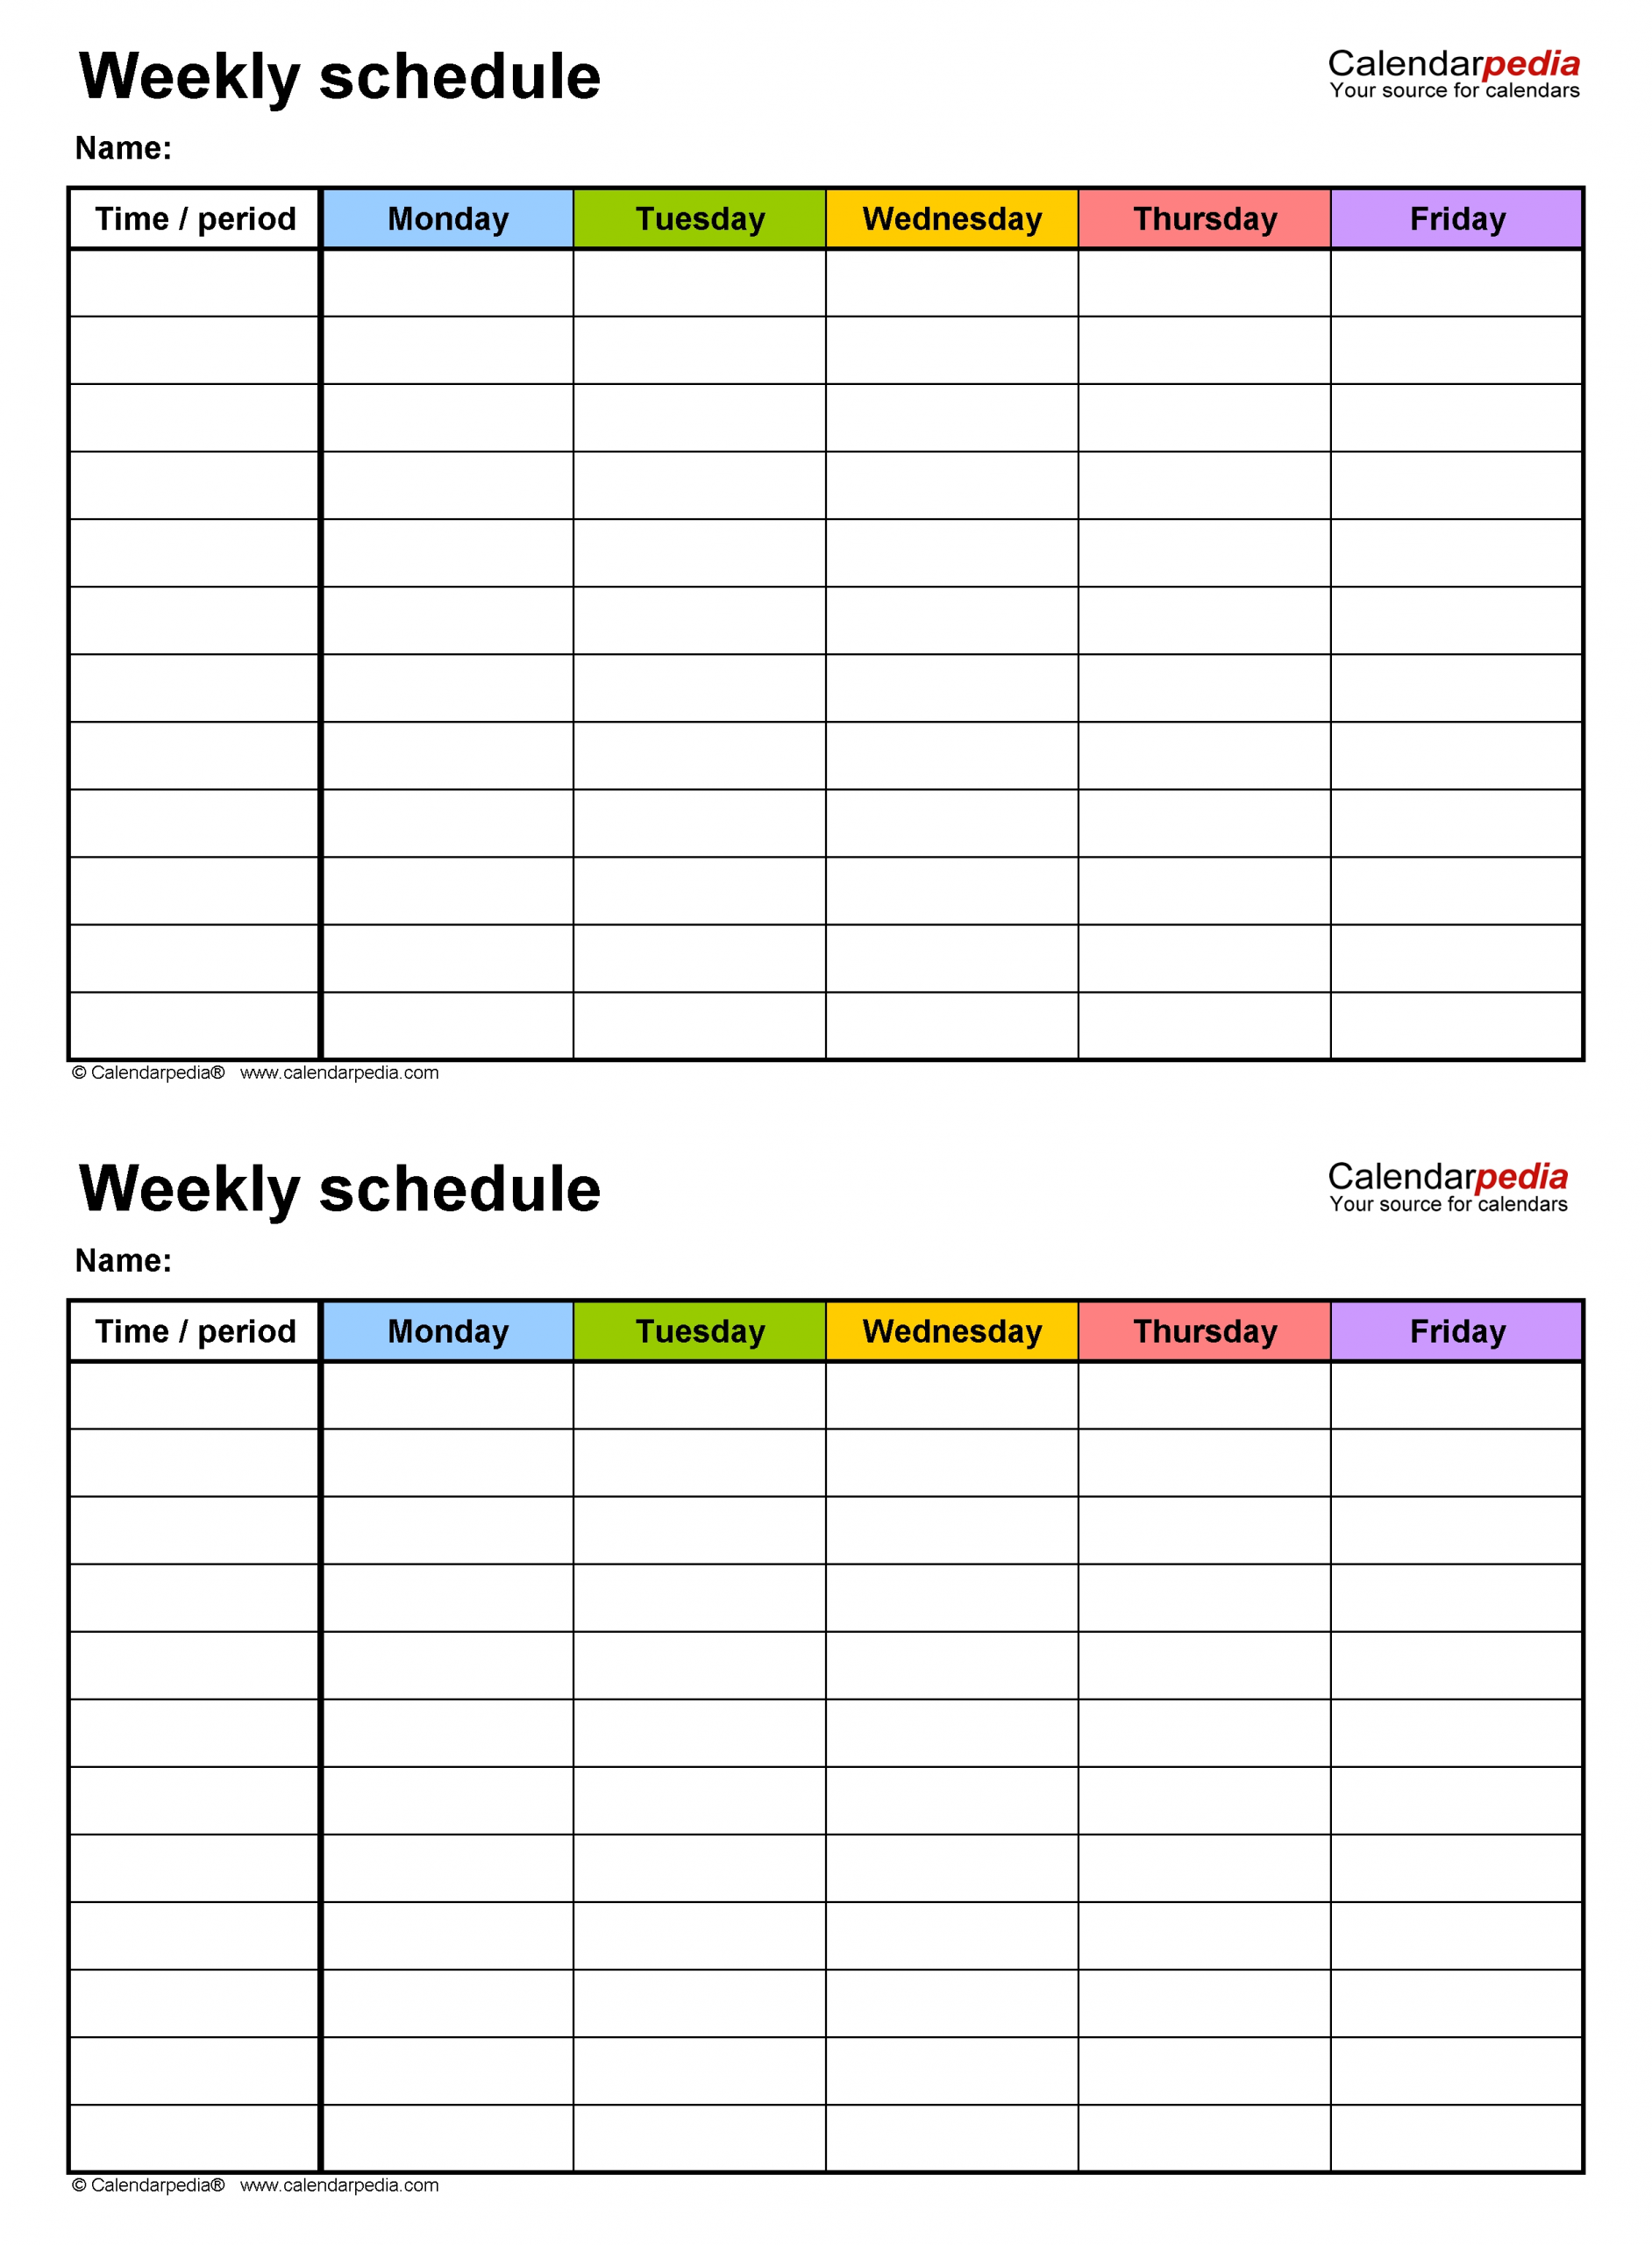 Monday To Friday Timetable Template   Calendar Template Free Printable Weekly Schedule Monday Fridays